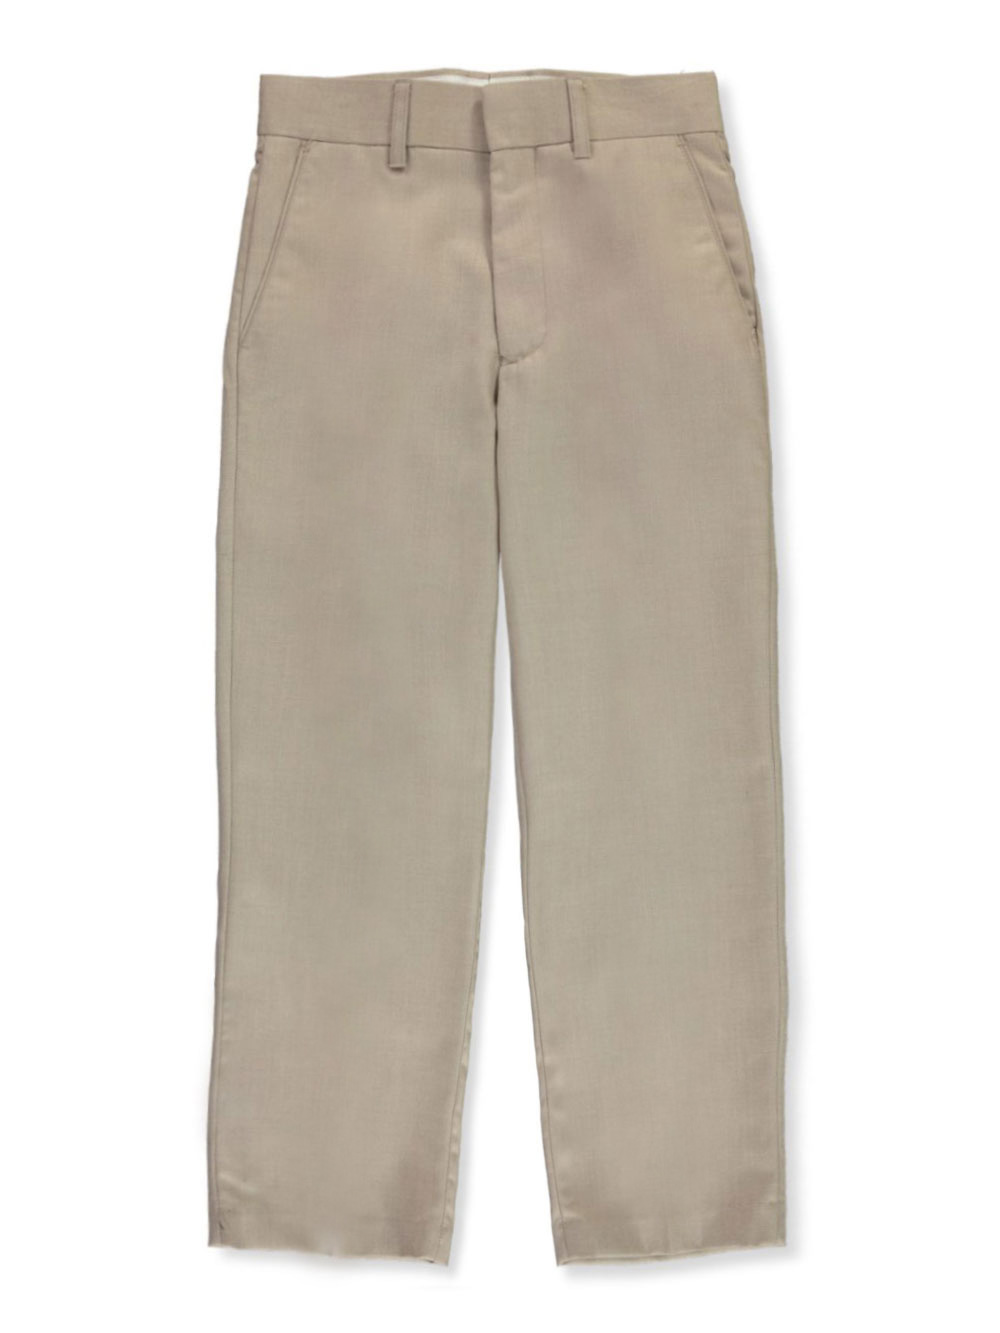 Size 20 Dress Pants for Boys